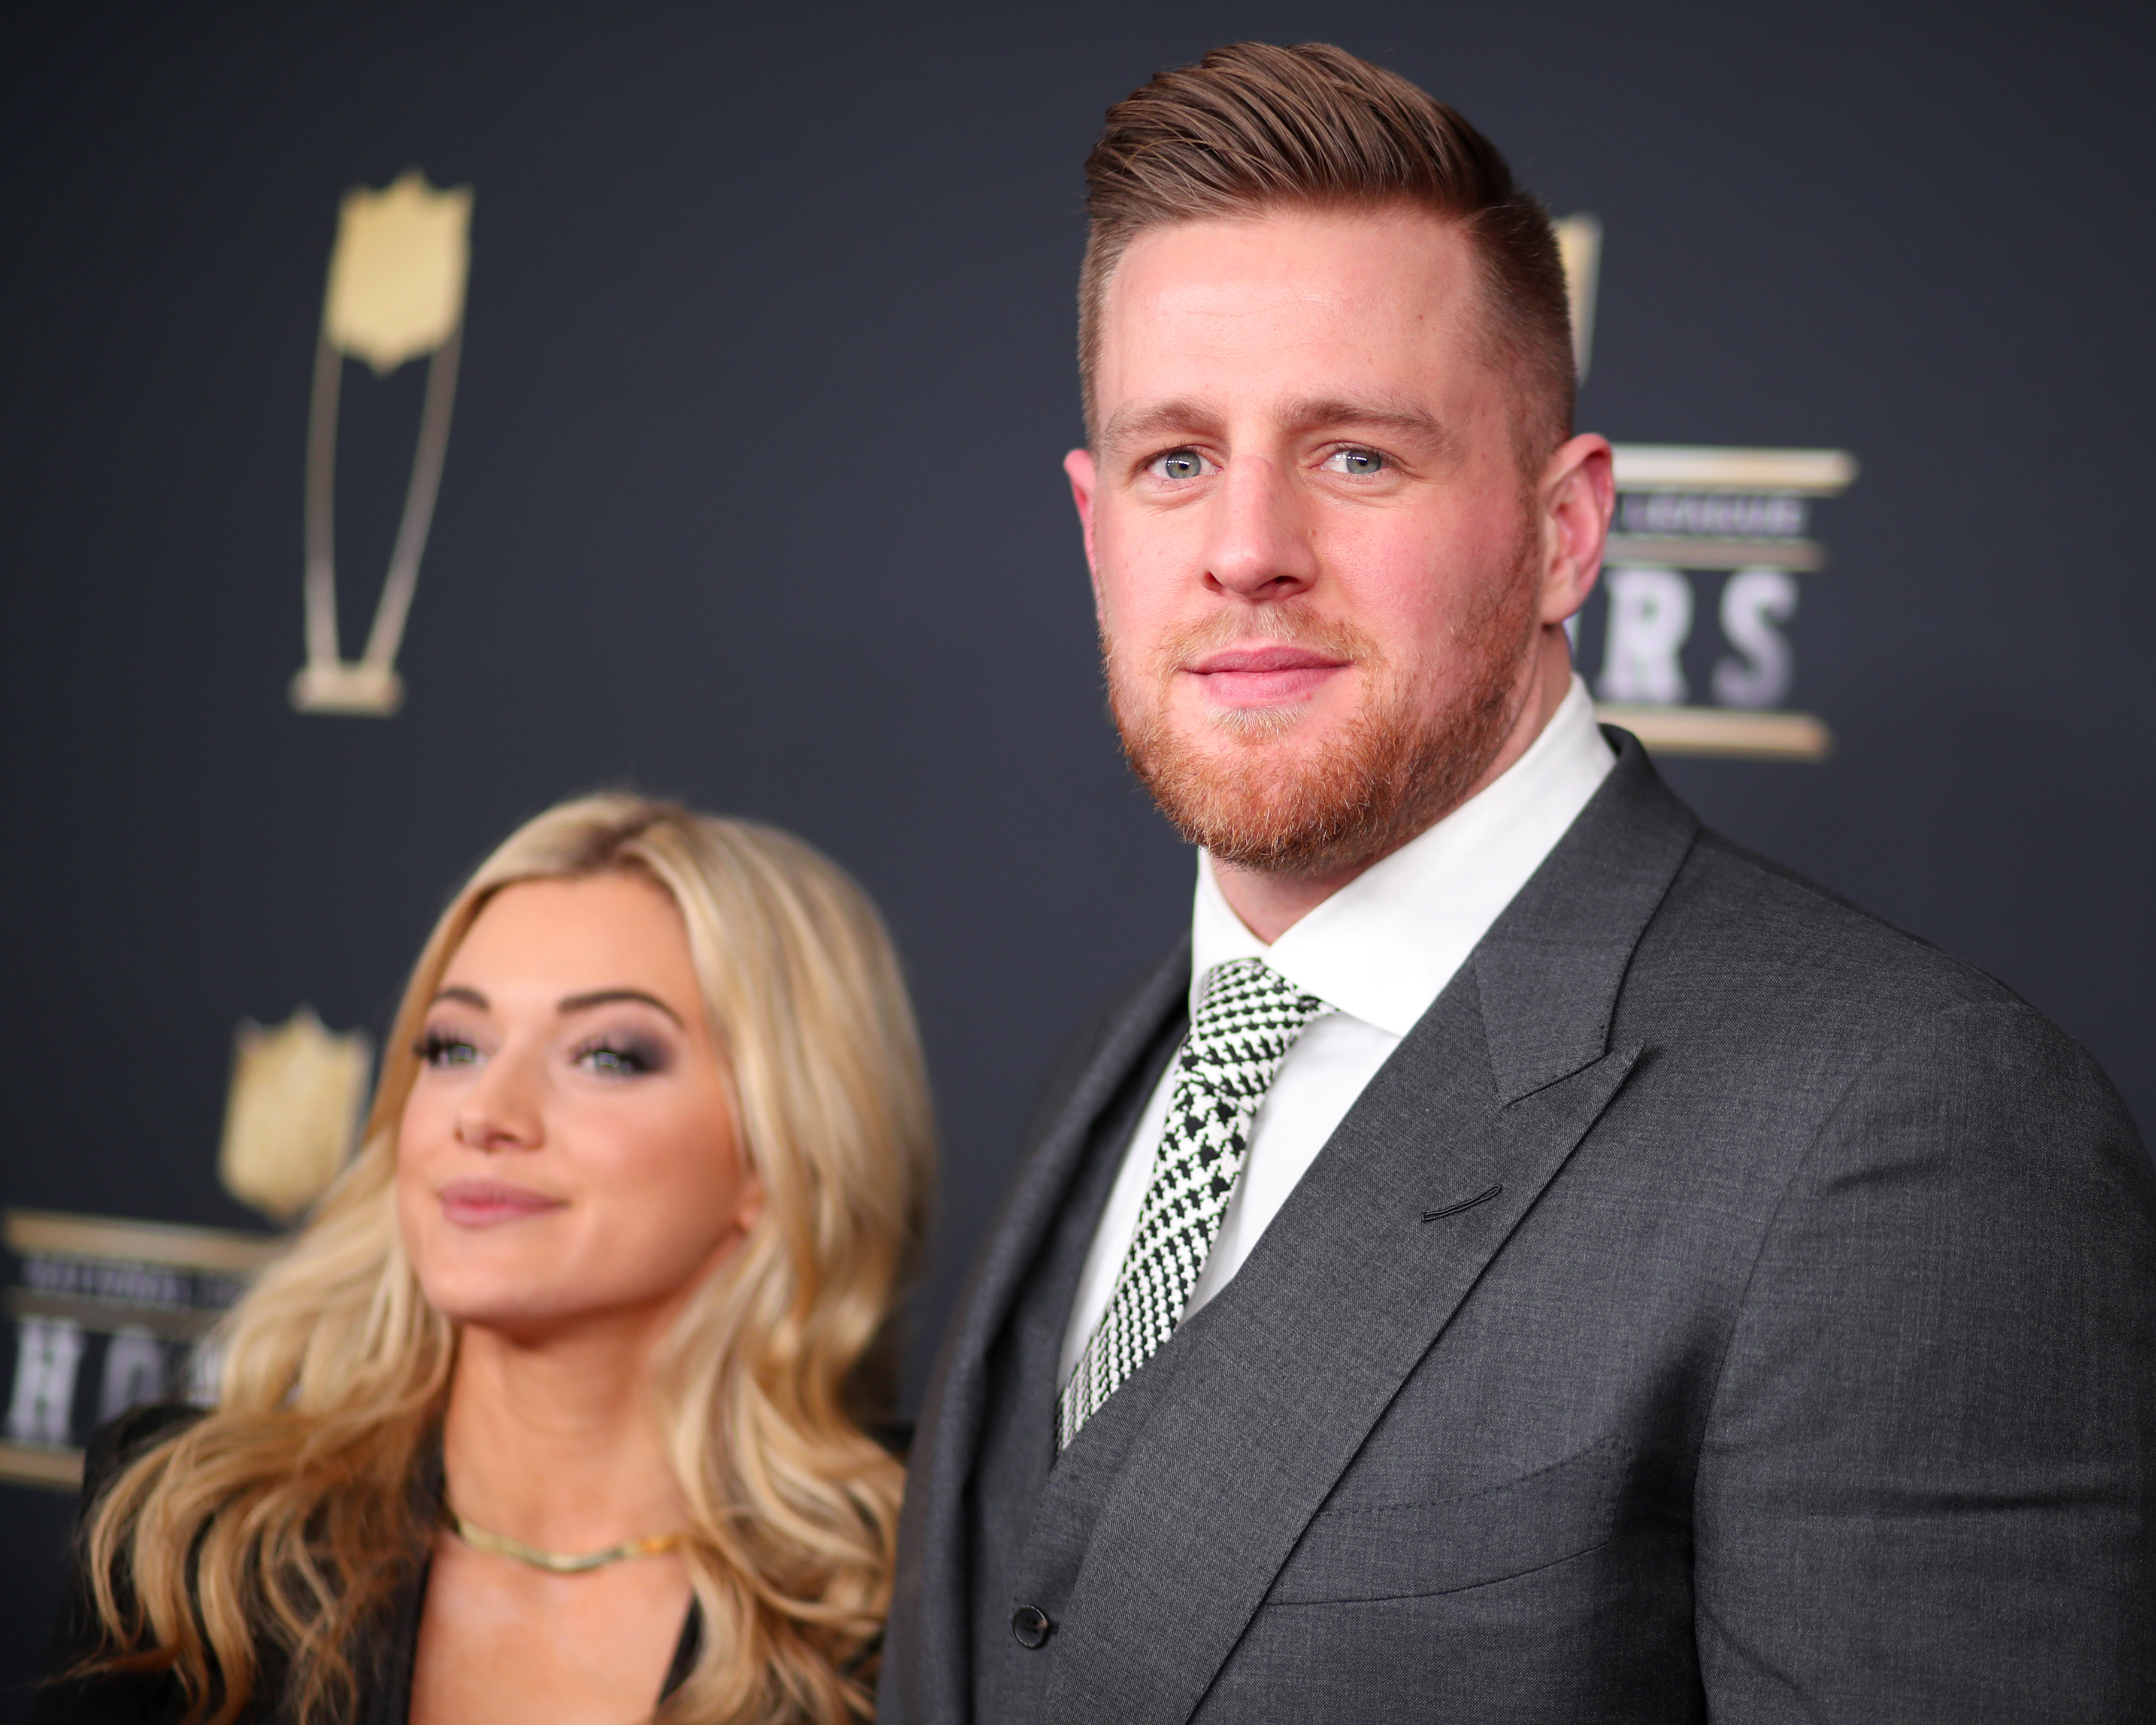 JJ Watt and his wife Kealia Ohai smile for a photo on the red carpet